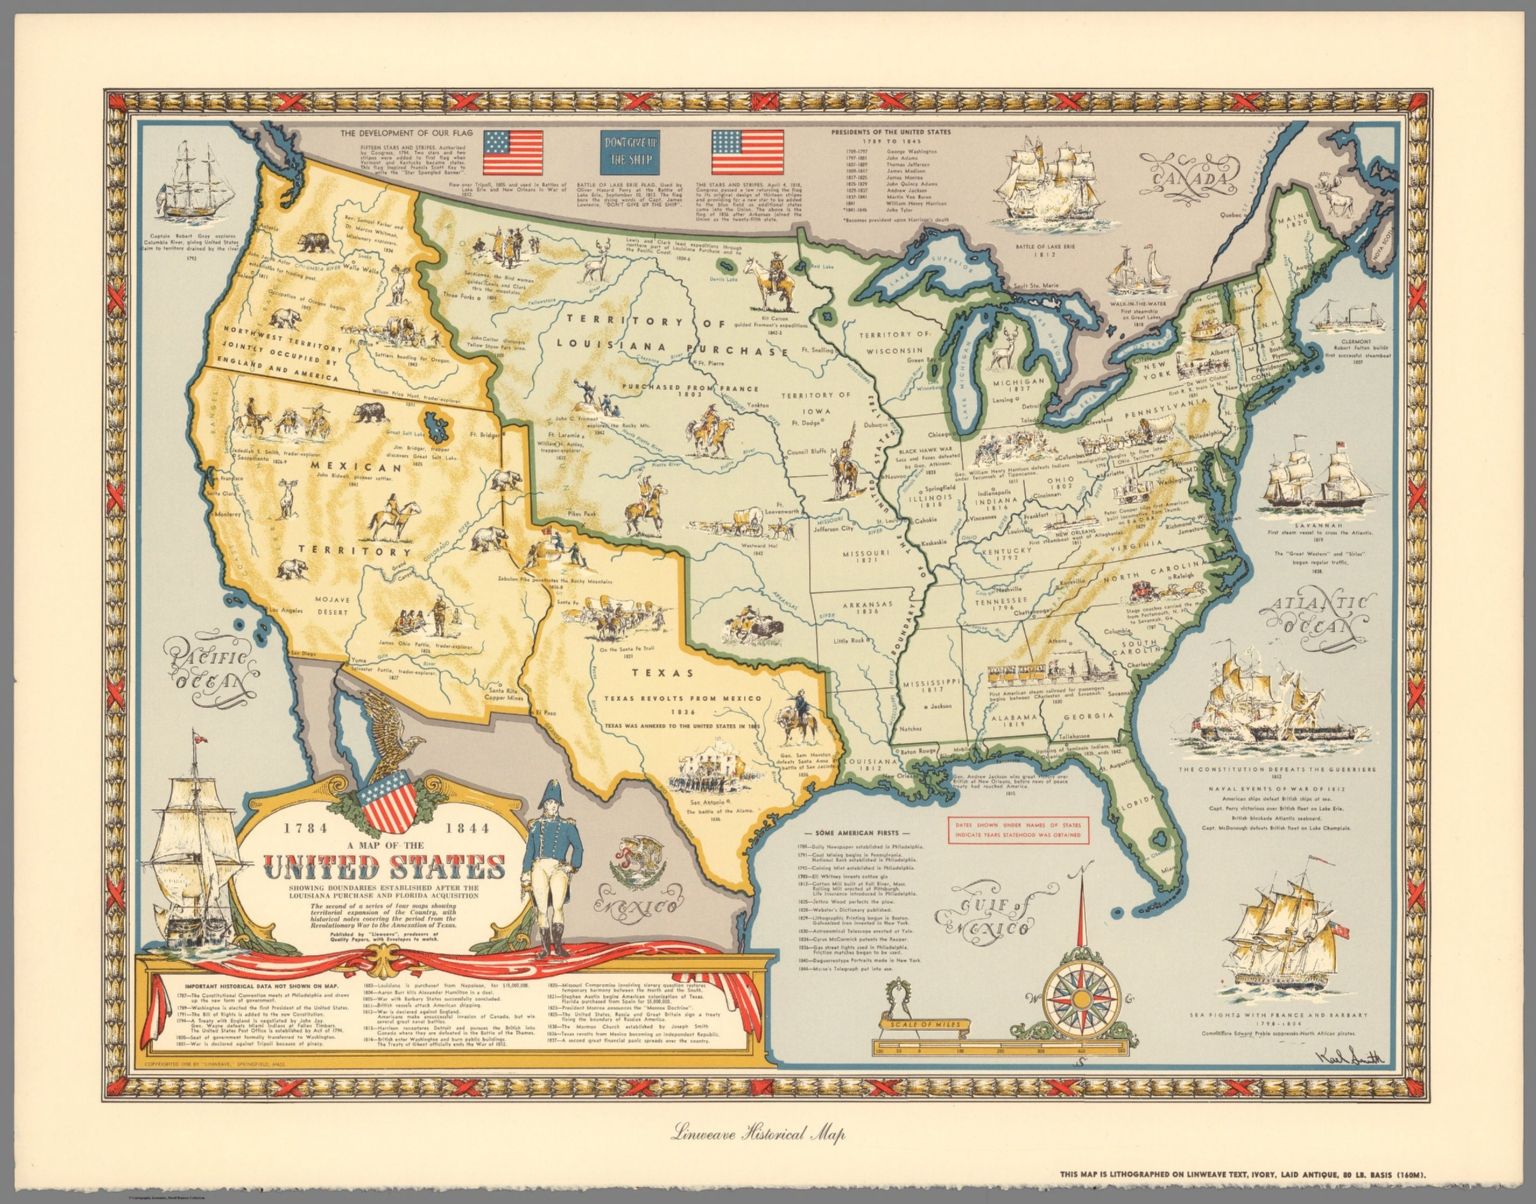 a map of the united states showing boundaries established after the louisiana purchase and